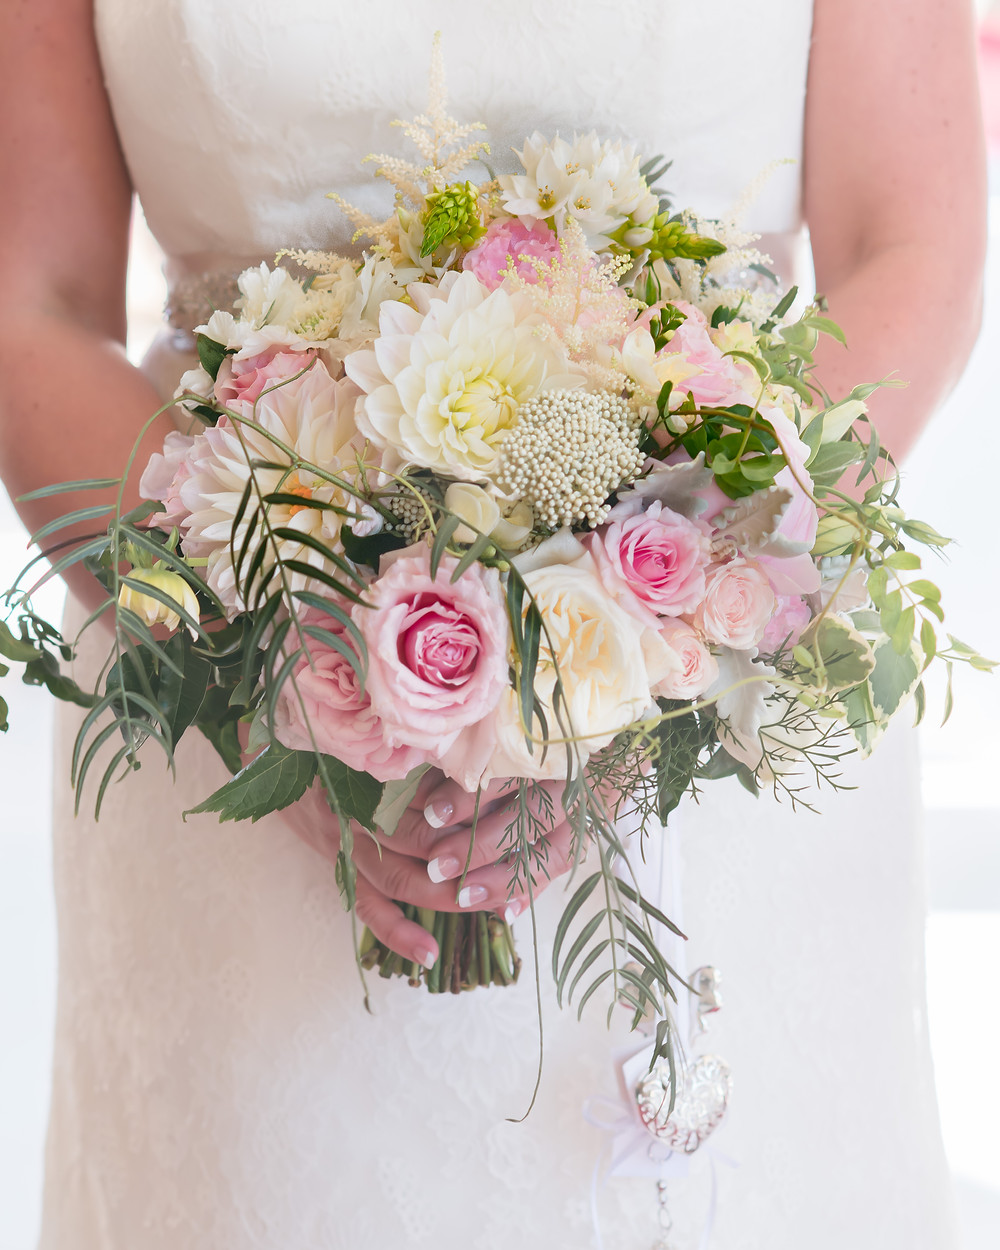 This spectacular wedding bouquet, made up of white dahlia's, pin k & white David Austin roses, Jasmine, Astible, rice flower and silver suede, was perfect for a beautiful sunny day in Melbournes CBD.